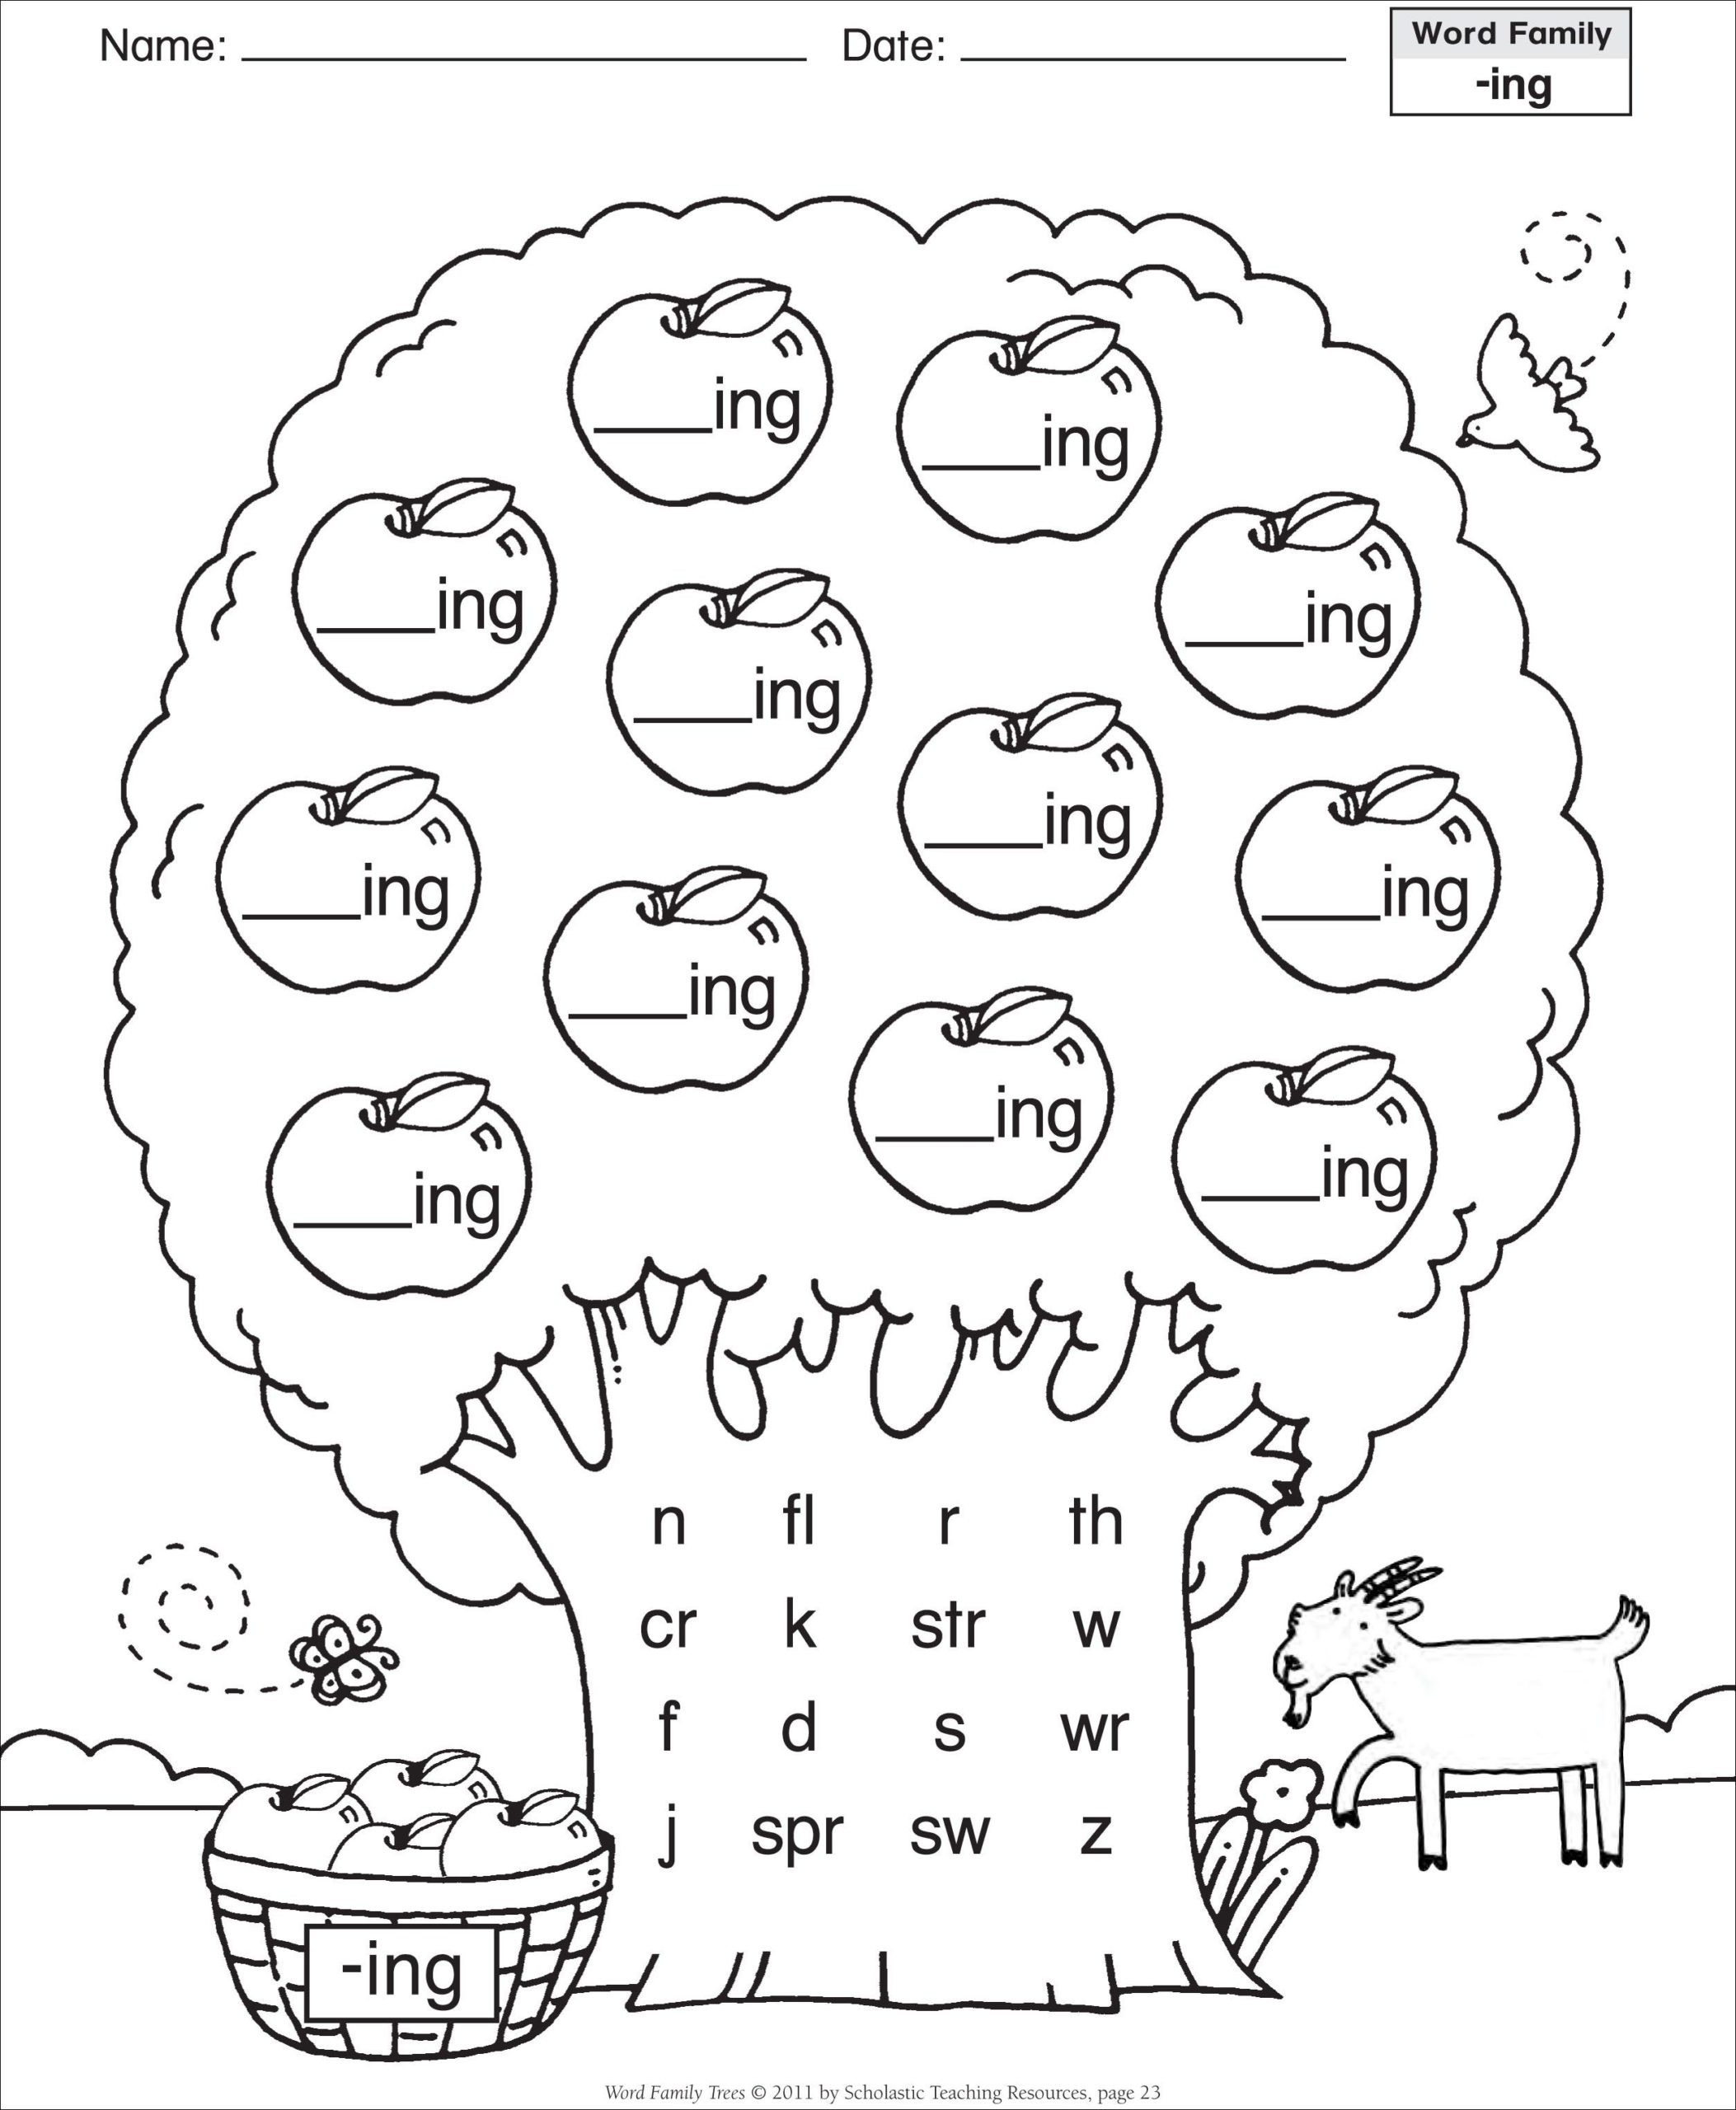 Short Vowel Worksheets 1st Grade Monthly Archives April 2020 Make A 10 to Add First Grade